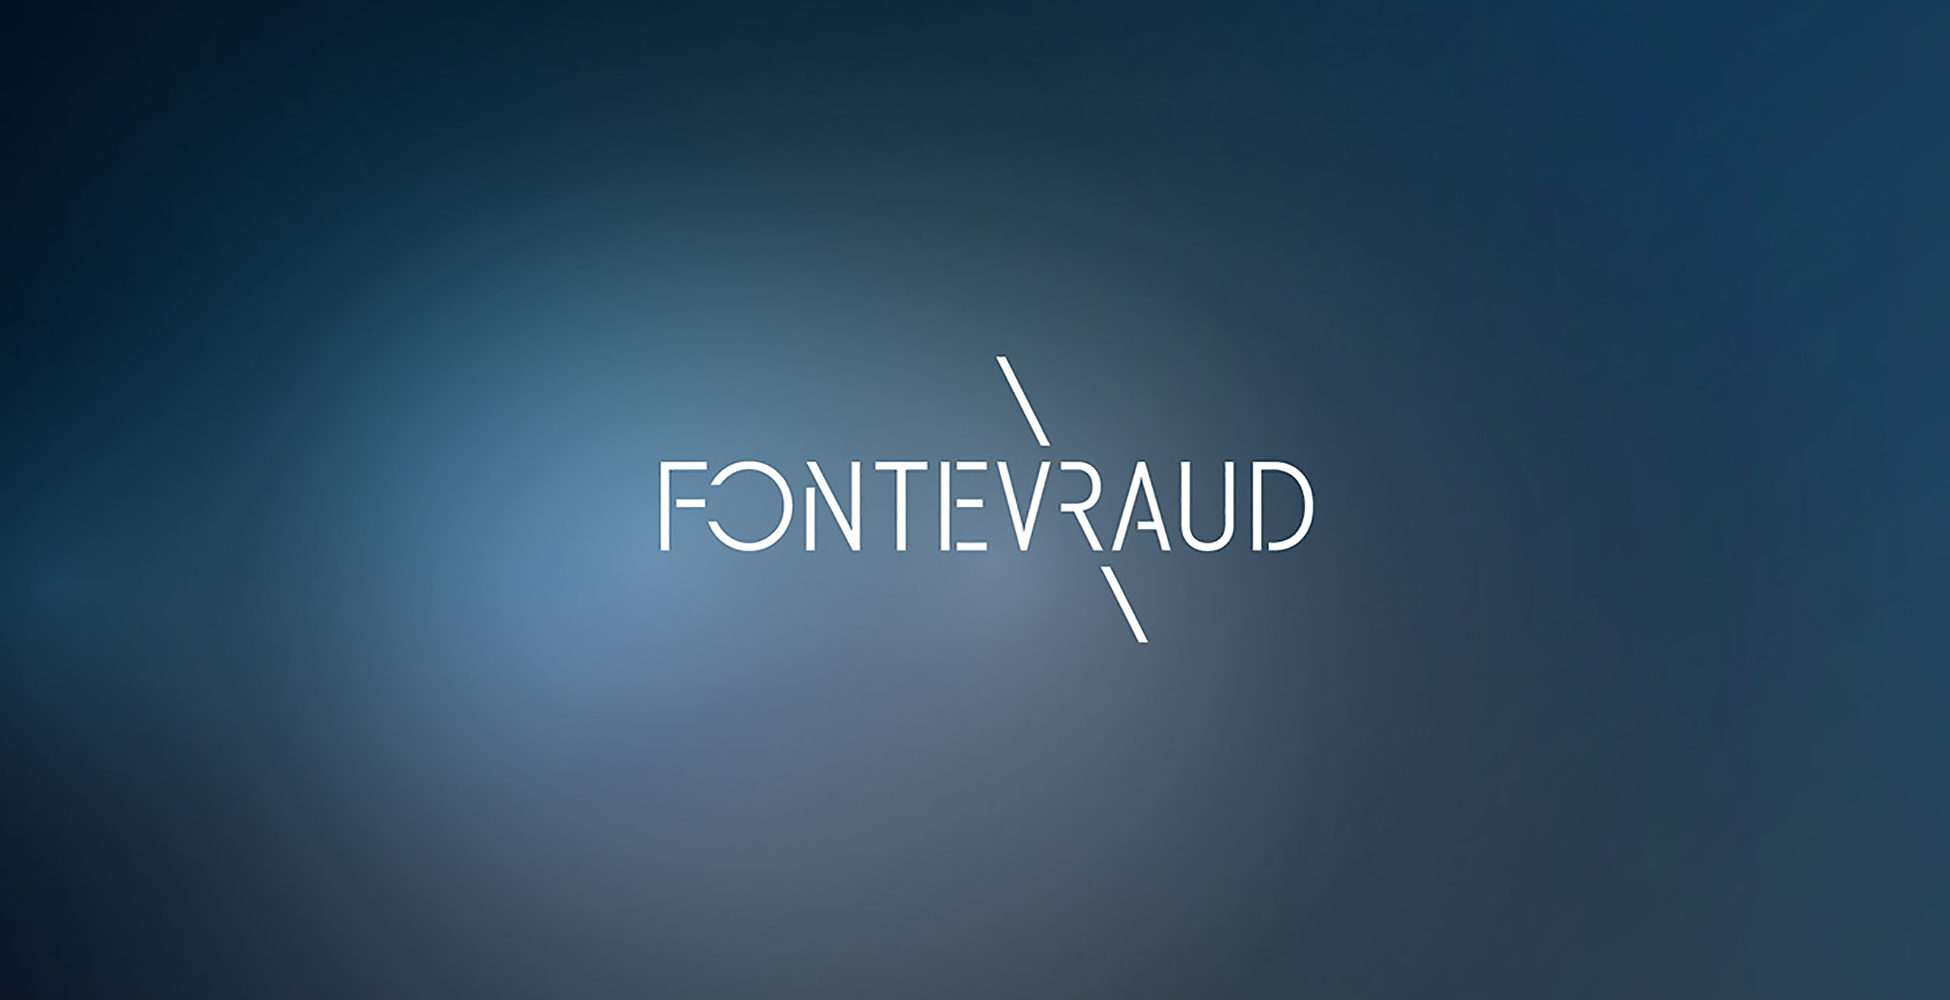 logo_slash_halo_fontevraud